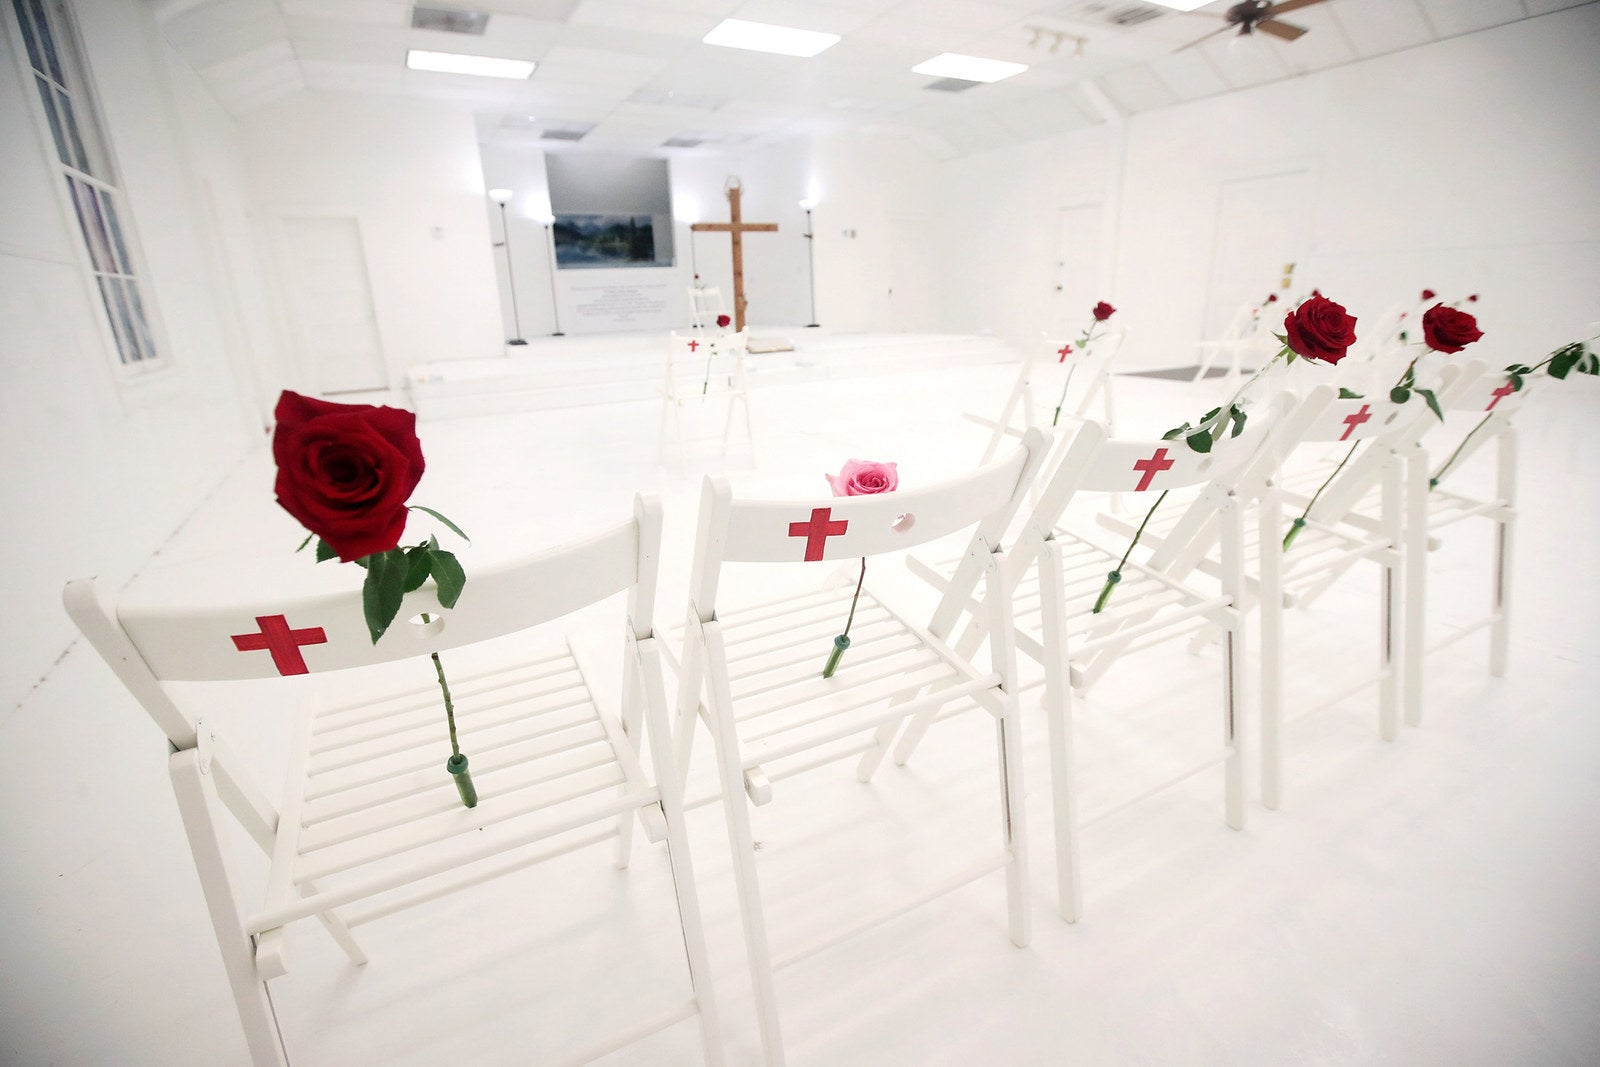 The First Baptist Church of Sutherland Springs was turned into a memorial to honor those who died on Nov. 12, in Sutherland Springs, Texas, when a gunman opened fire and killed 26 people. Each chair is placed at the location in the room where the victim died.